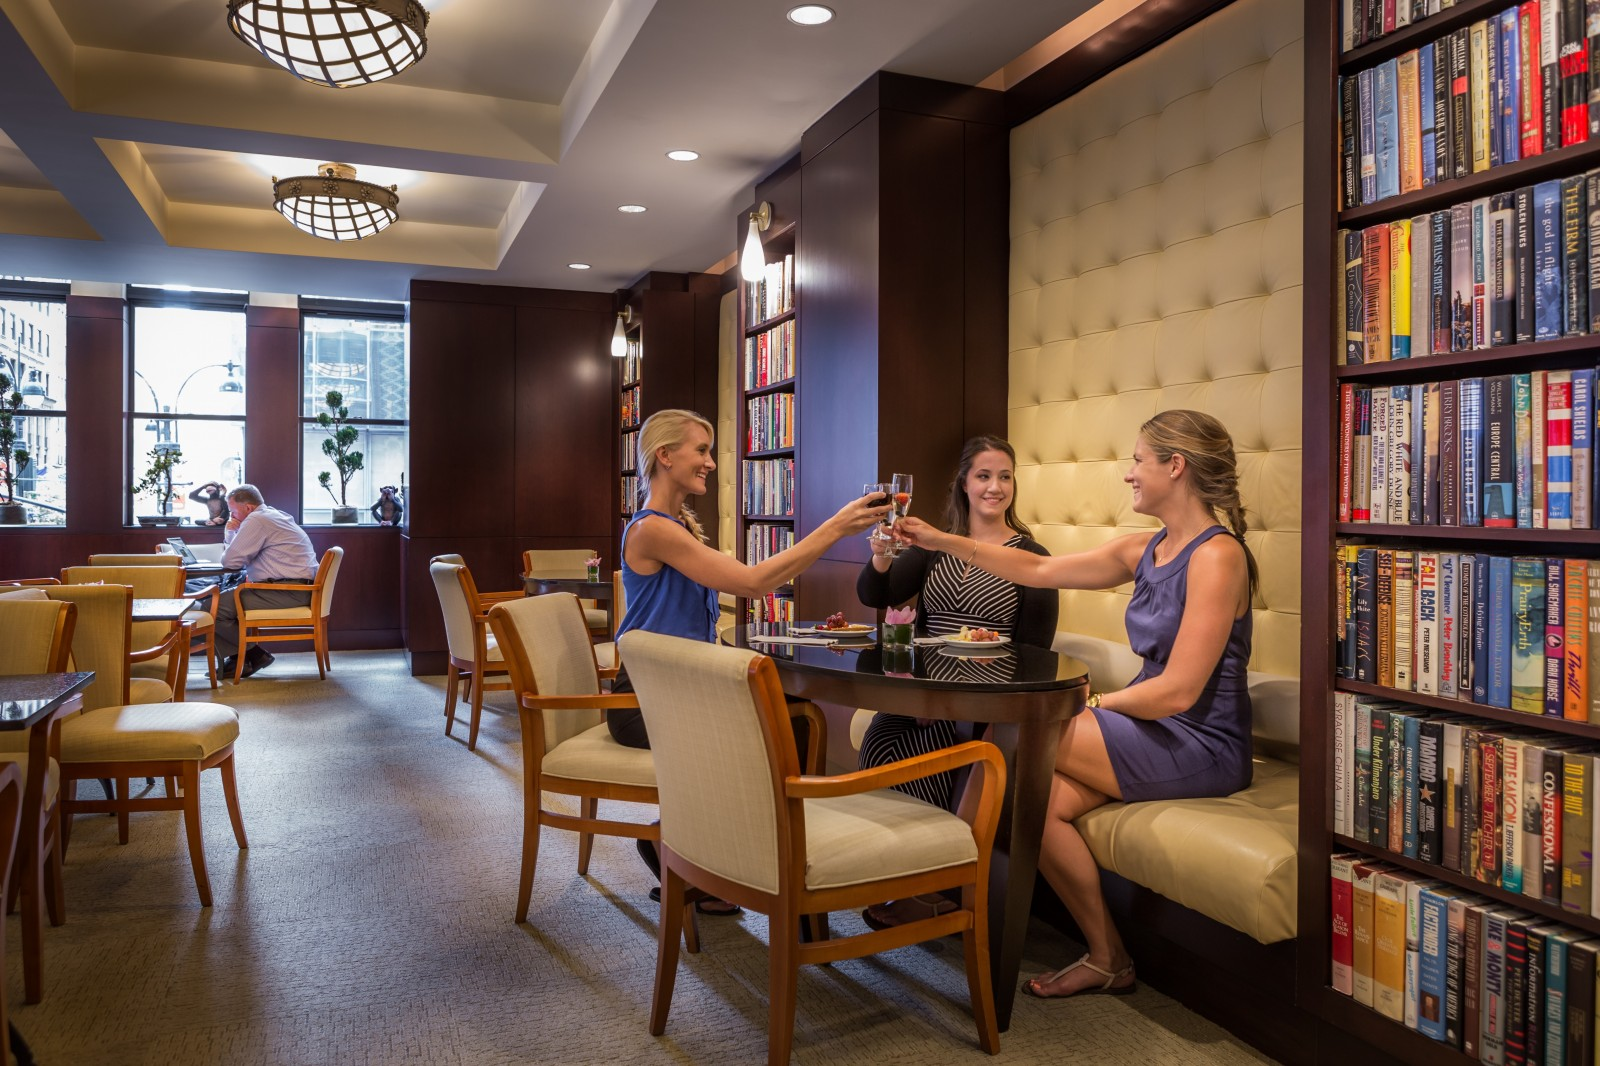 Library Hotel New York City Small Luxury Hotel Nyc All